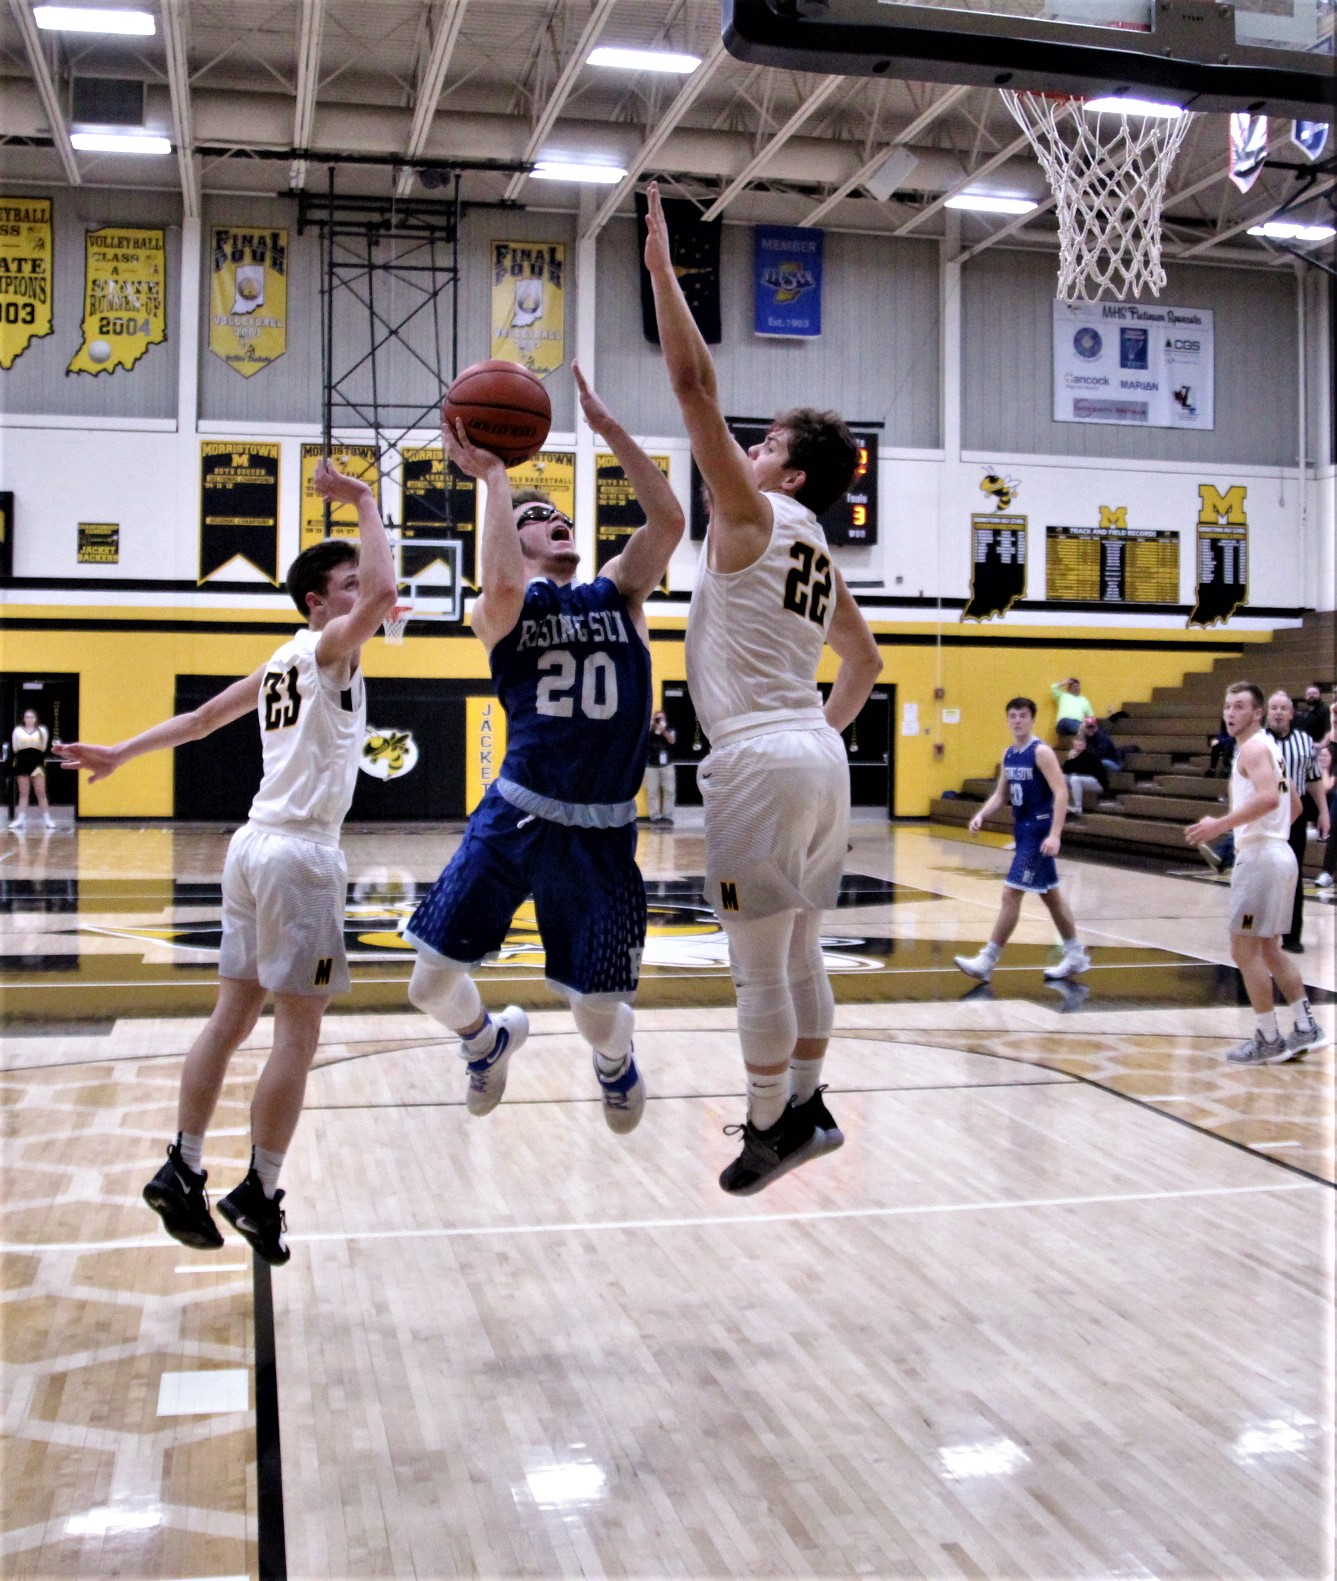 Shiners battle…Lose to defending State Champs